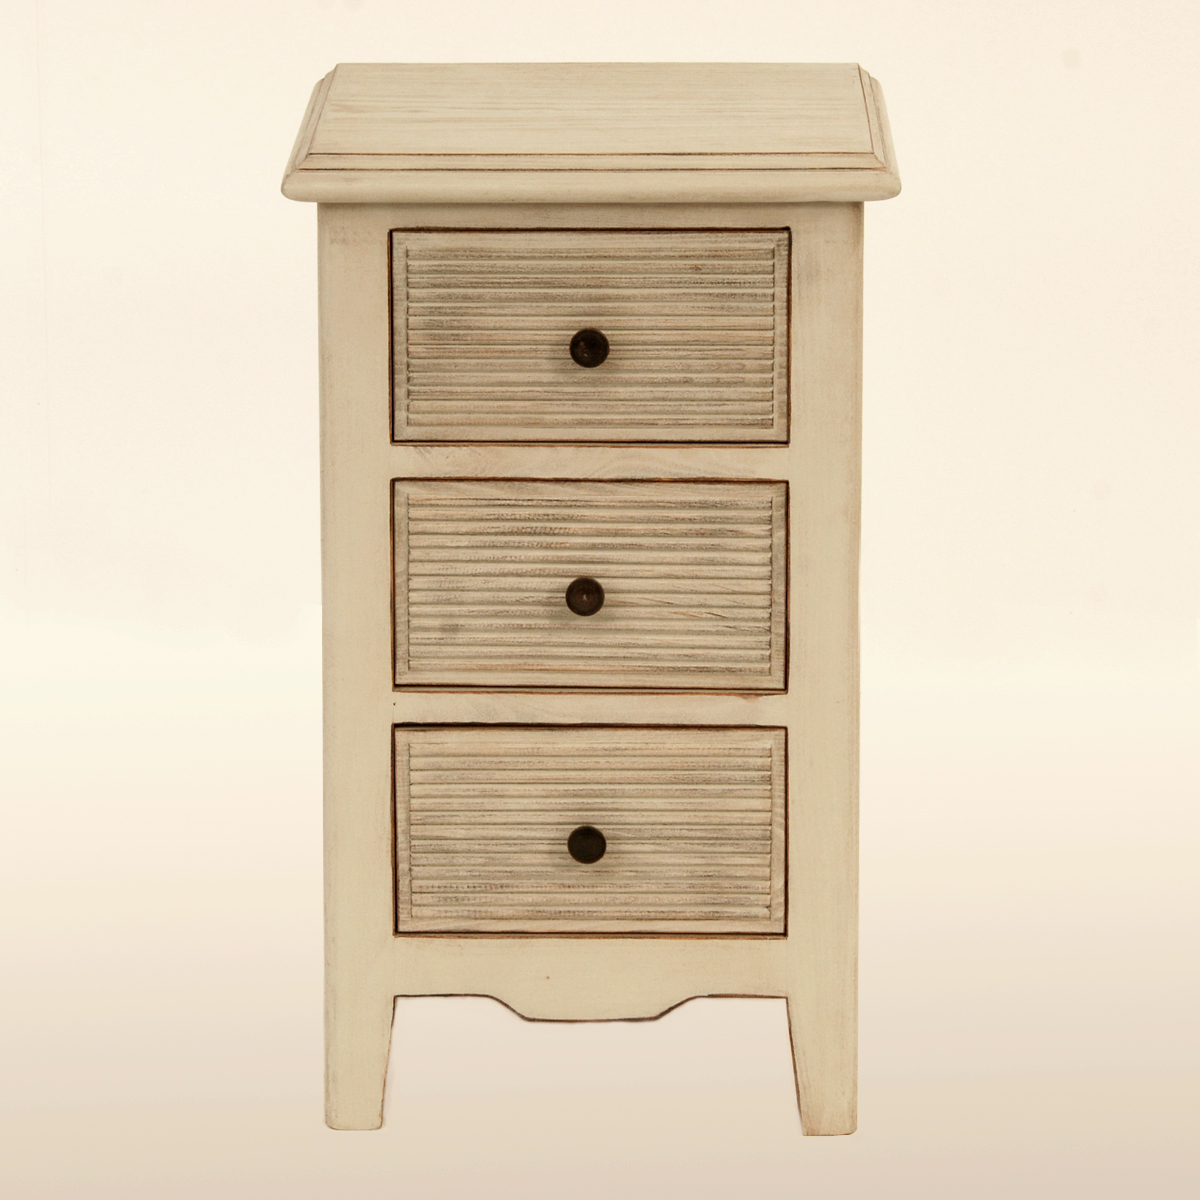 Be0055 Bedside Table With Shutters